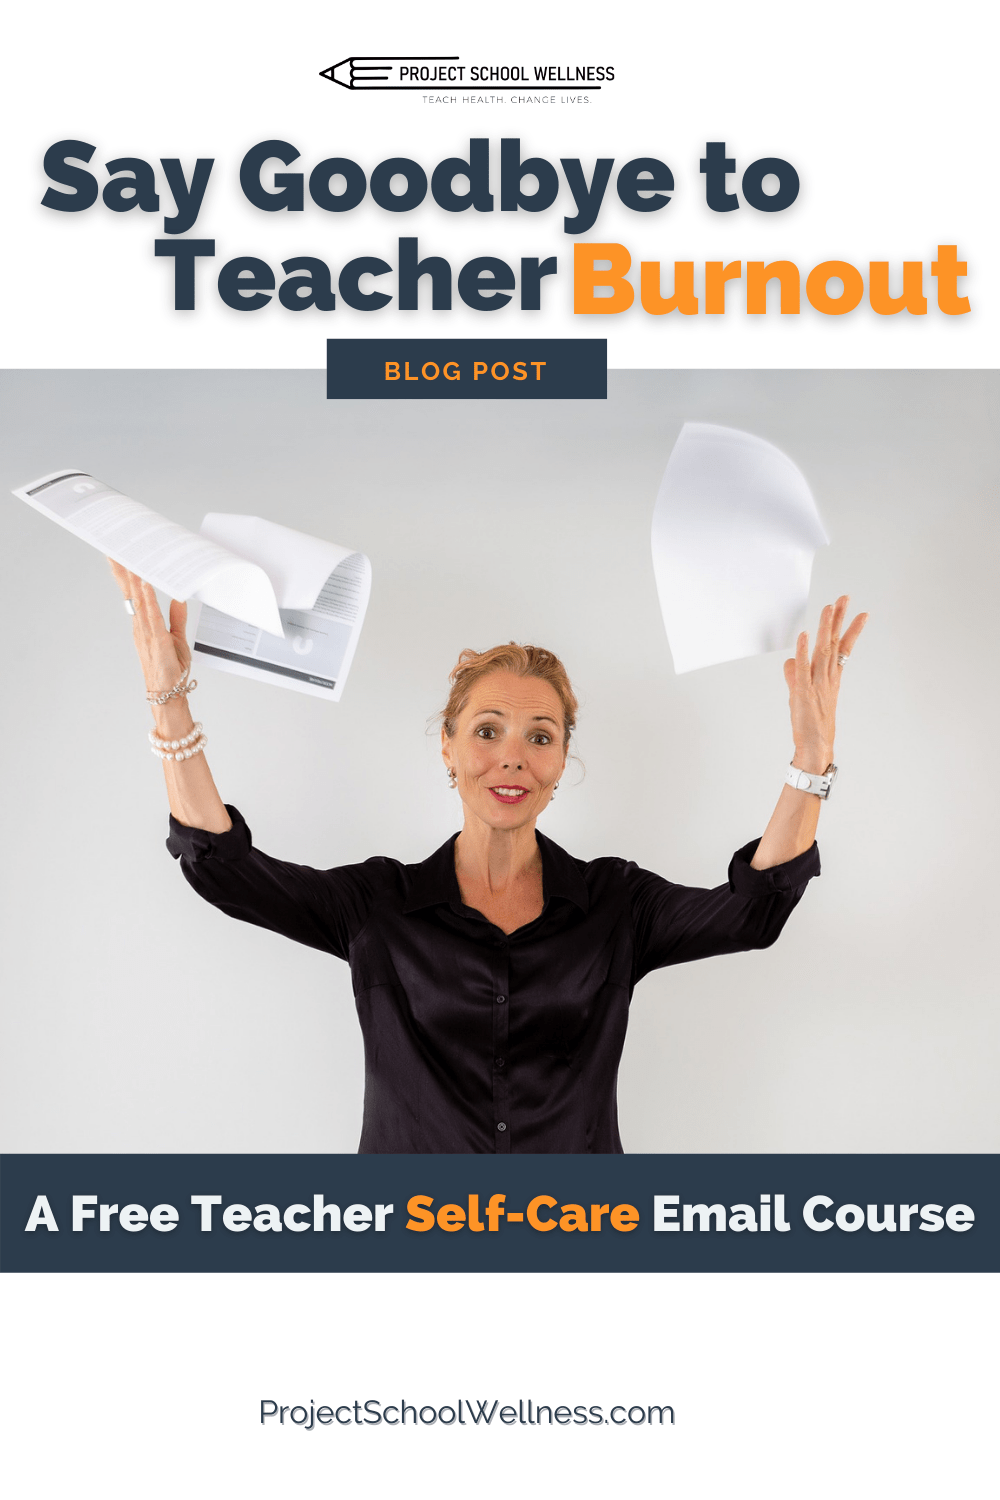 A free Teacher Self-Care email course by Project School Wellness. Designed to help teachers overcome burnout and live their best lives.